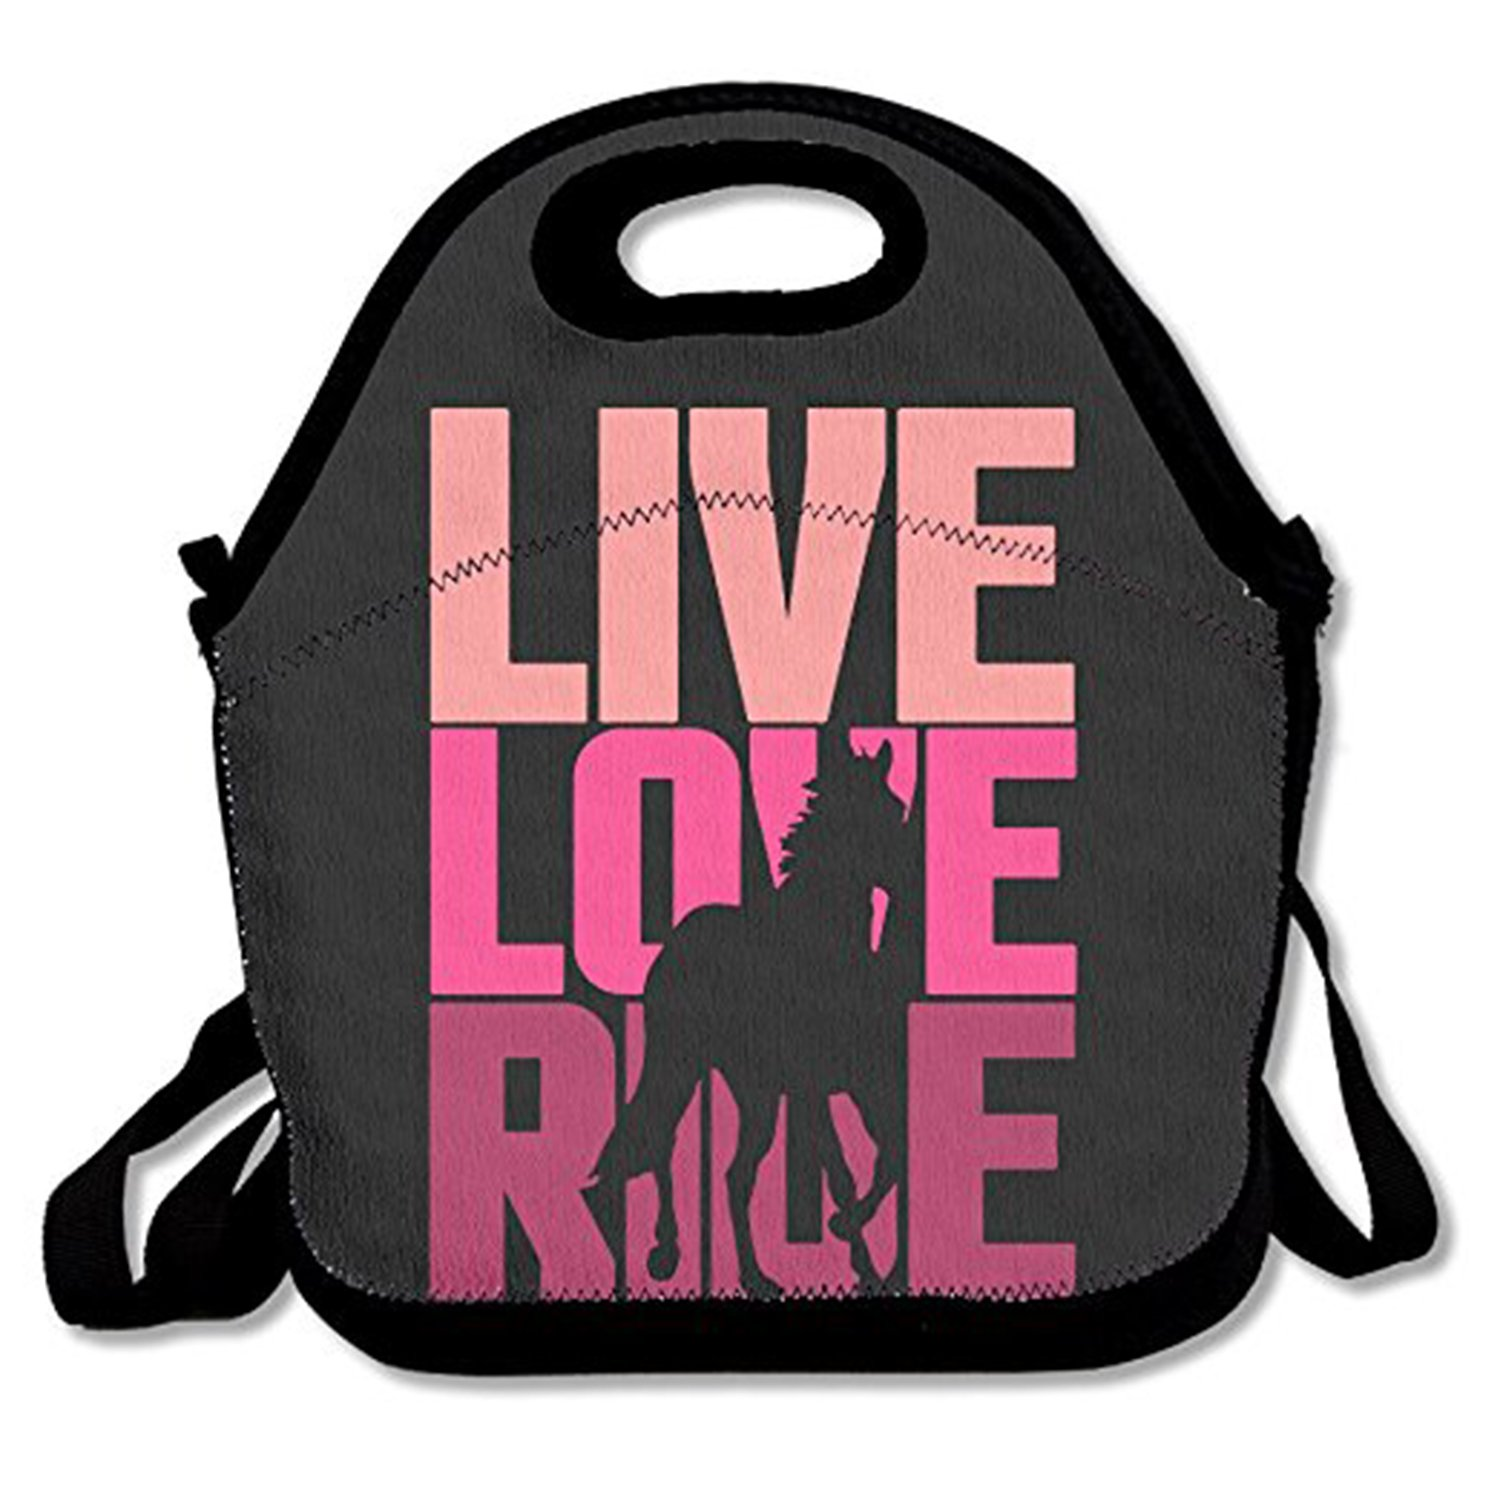 ZMvise Live Love Ride Horse Lunch Tote Insulated Reusable Picnic Lunch Bags Boxes Men Women Kids Toddler Nurses Travel Bag